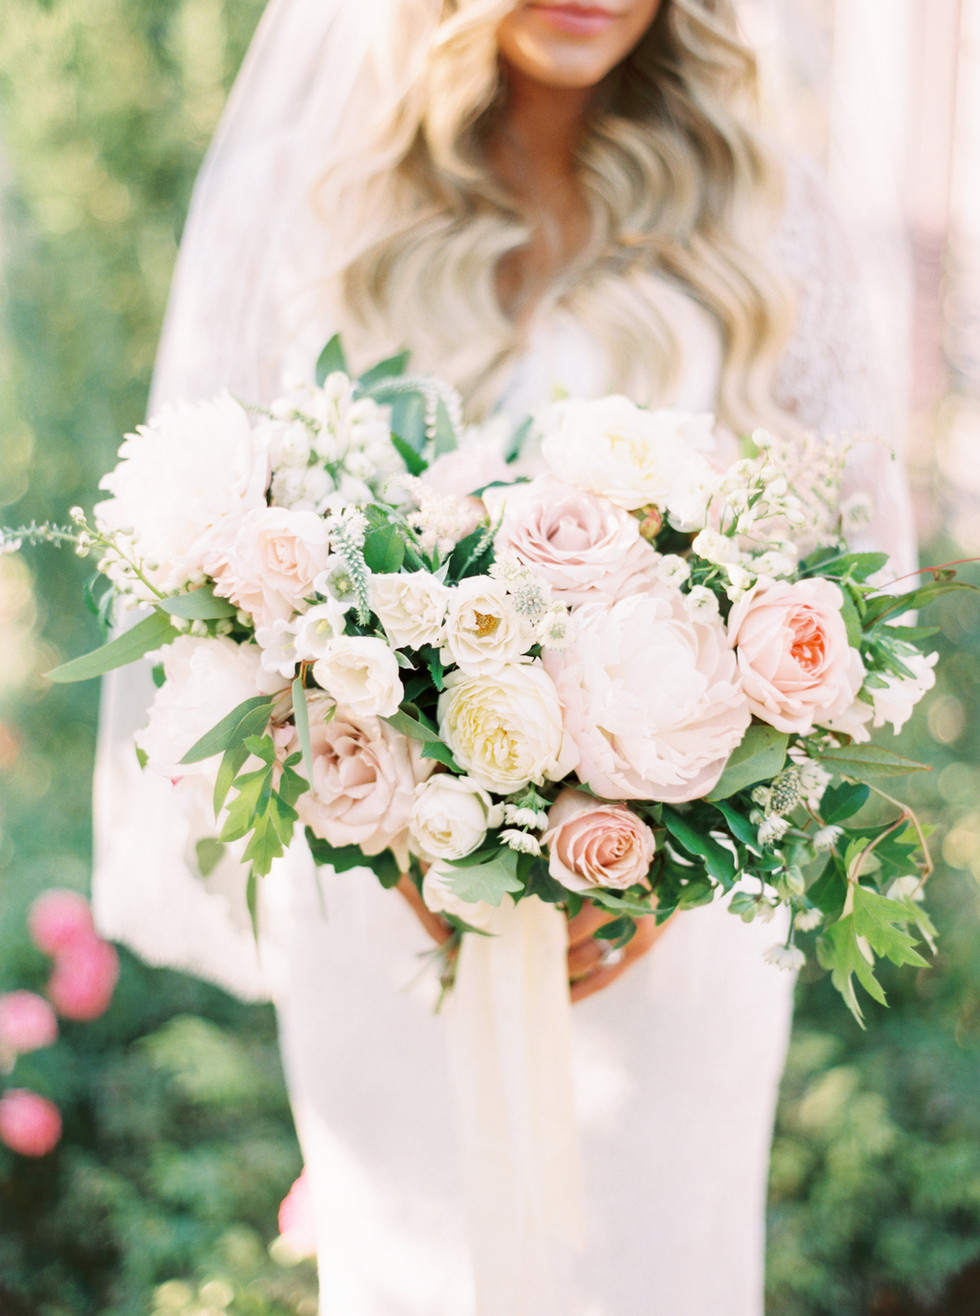 Blush and ivory bridal bouquet with peonies, roses and garden greenery, tied with silk ribbons. Photo: Mary Claire